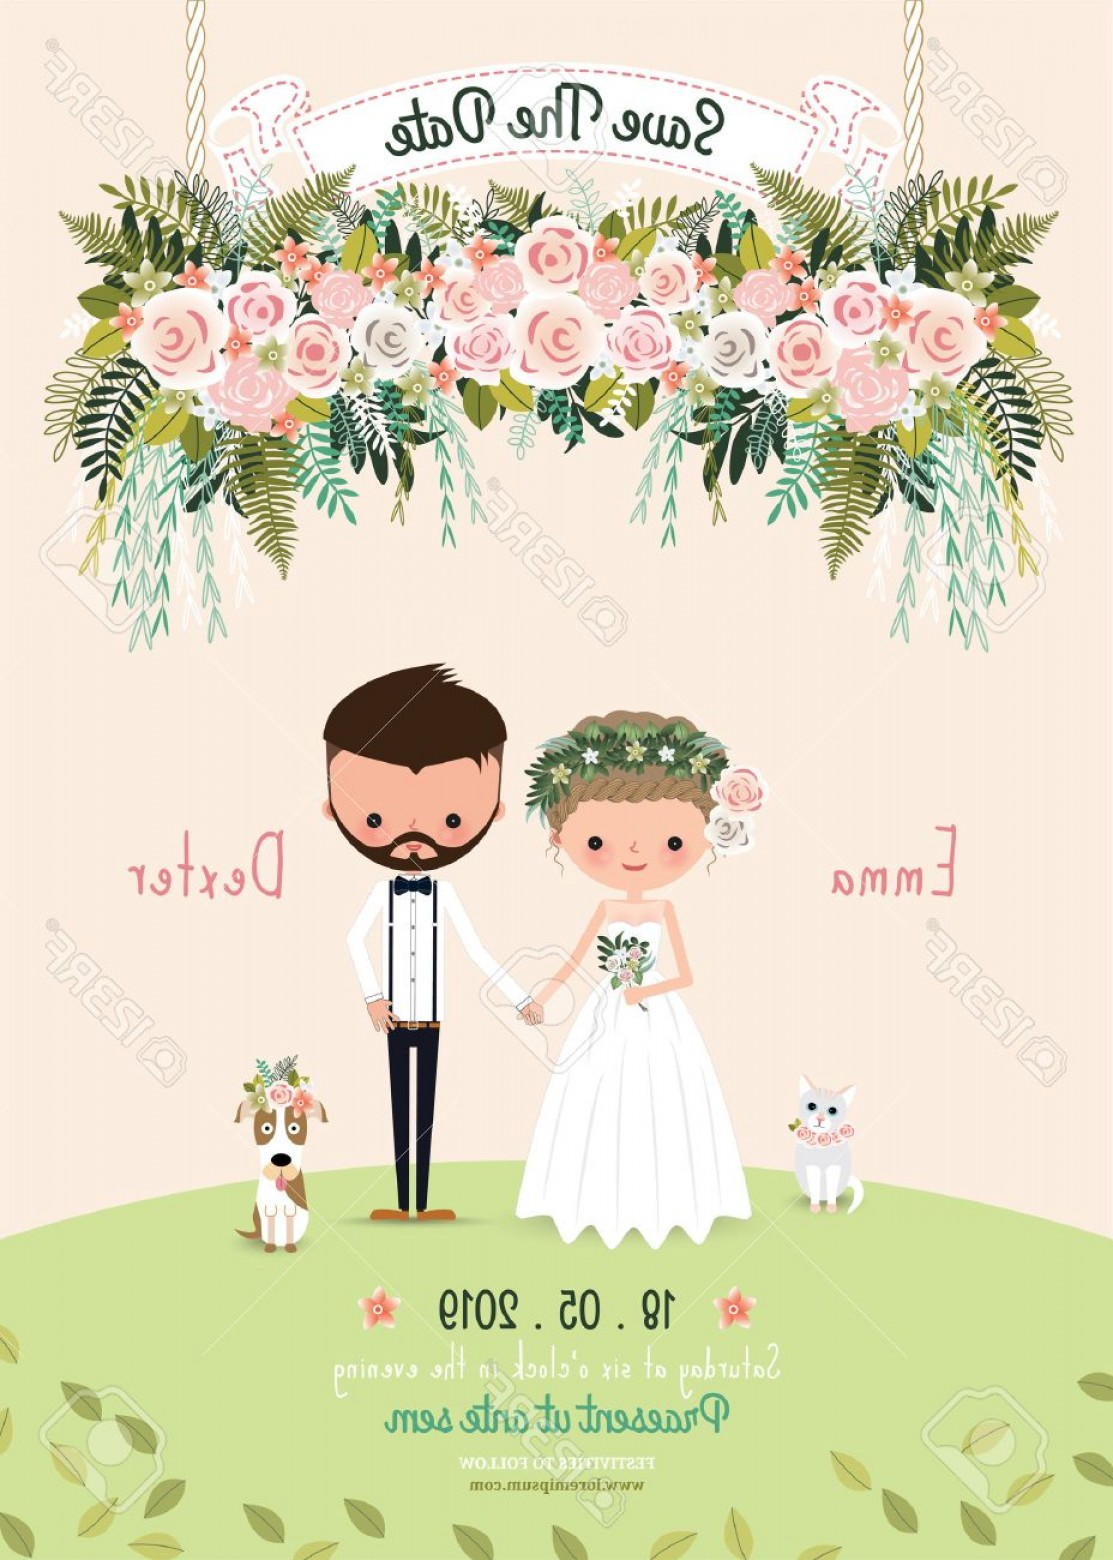 Rustic Wedding Invitation Vector: Photostock Vector Rustic Wedding Couple Save The Date Invitation Card Floral Blossom Bride And Groom With Dog And Cat